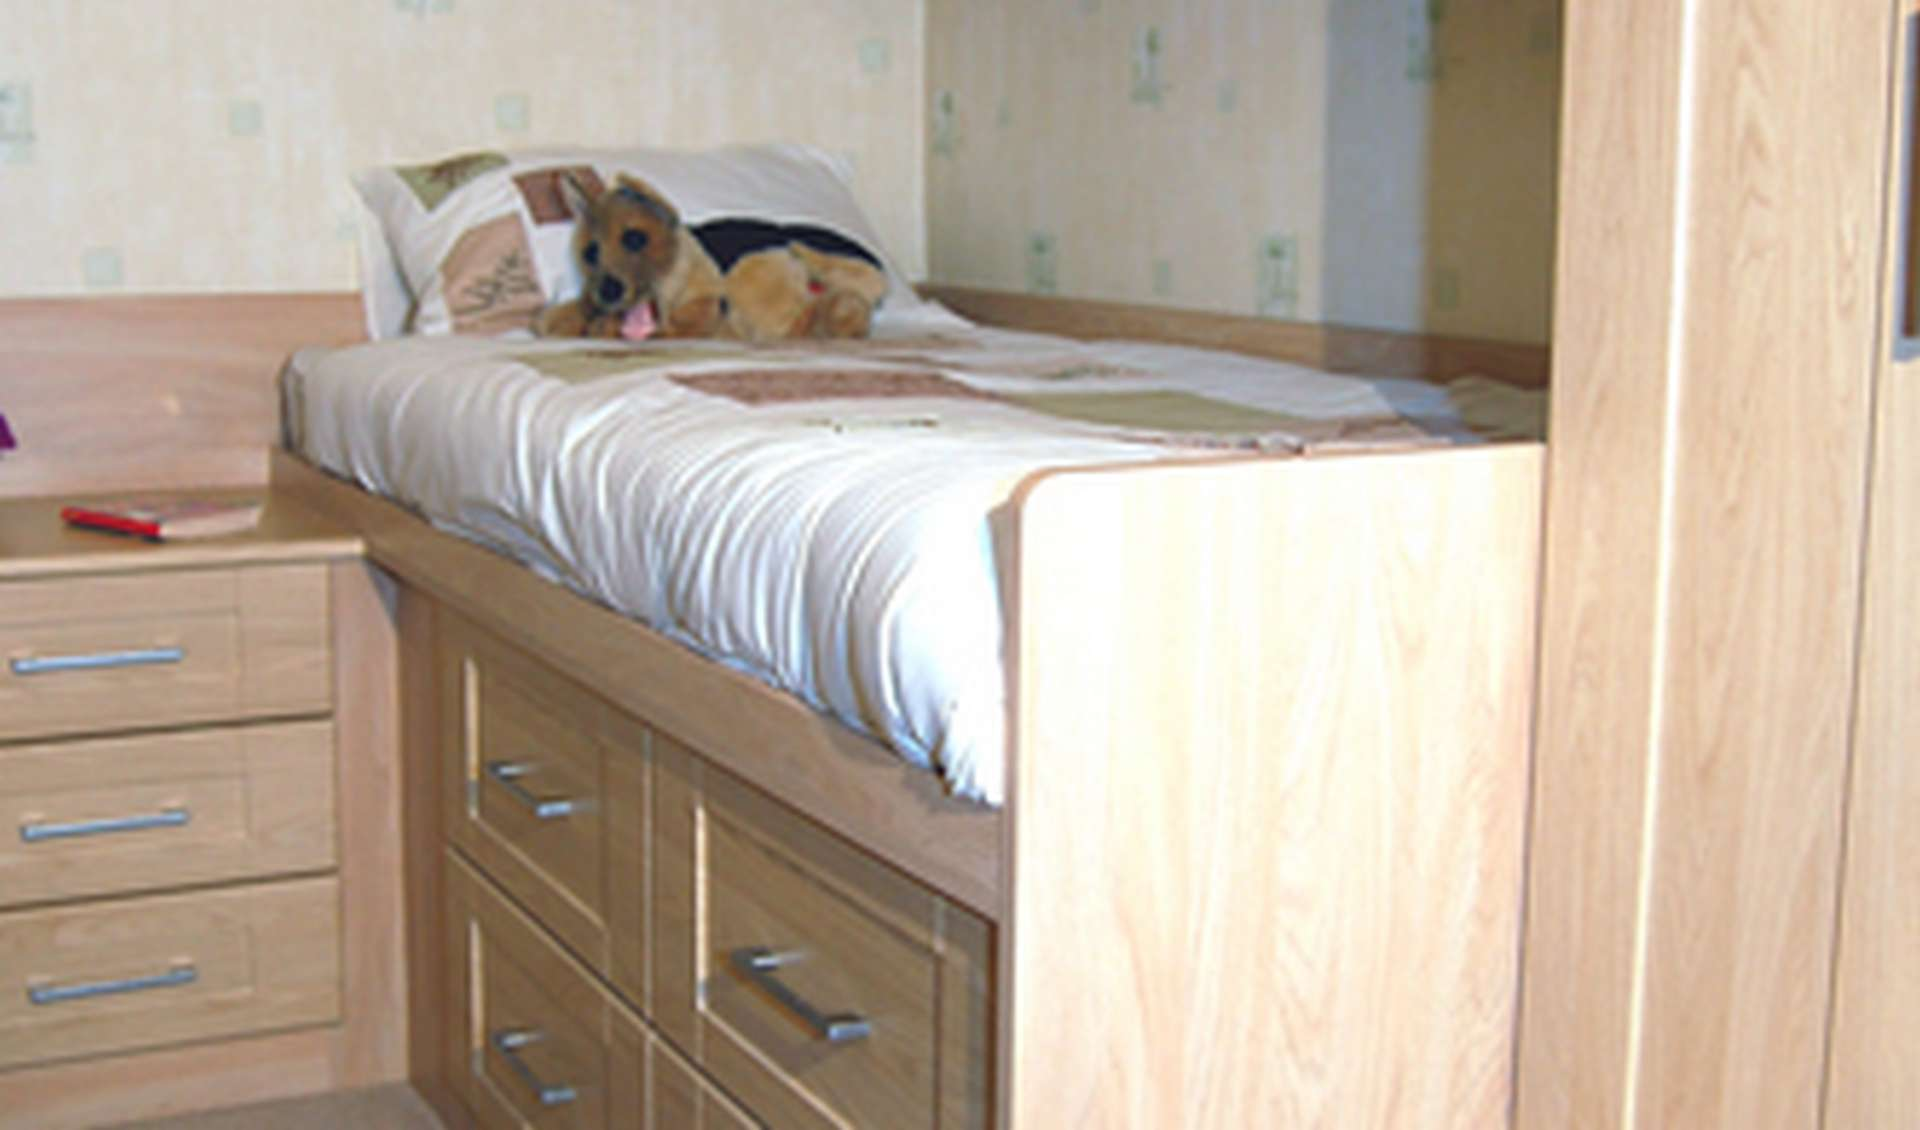 Cabin bed with under storage drawers and bedside